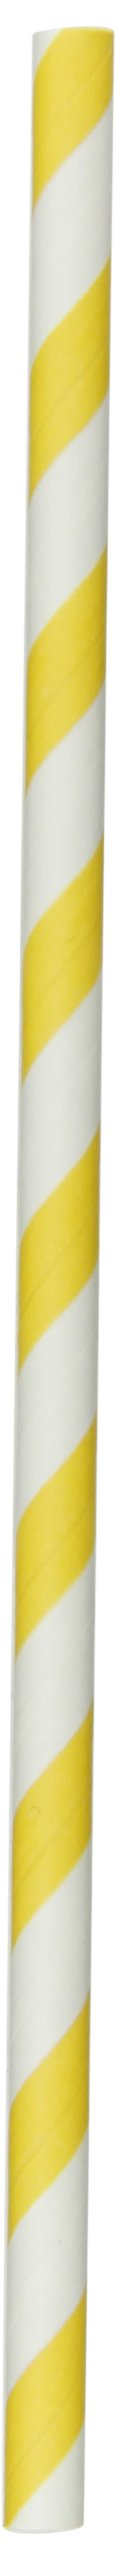 Aardvark 61520041 Paper Drinking Straw, 7/32'' Diameter x 7-3/4'' Length, Bright Yellow Stripe (8 Boxes of 600) by Aardvark Straws